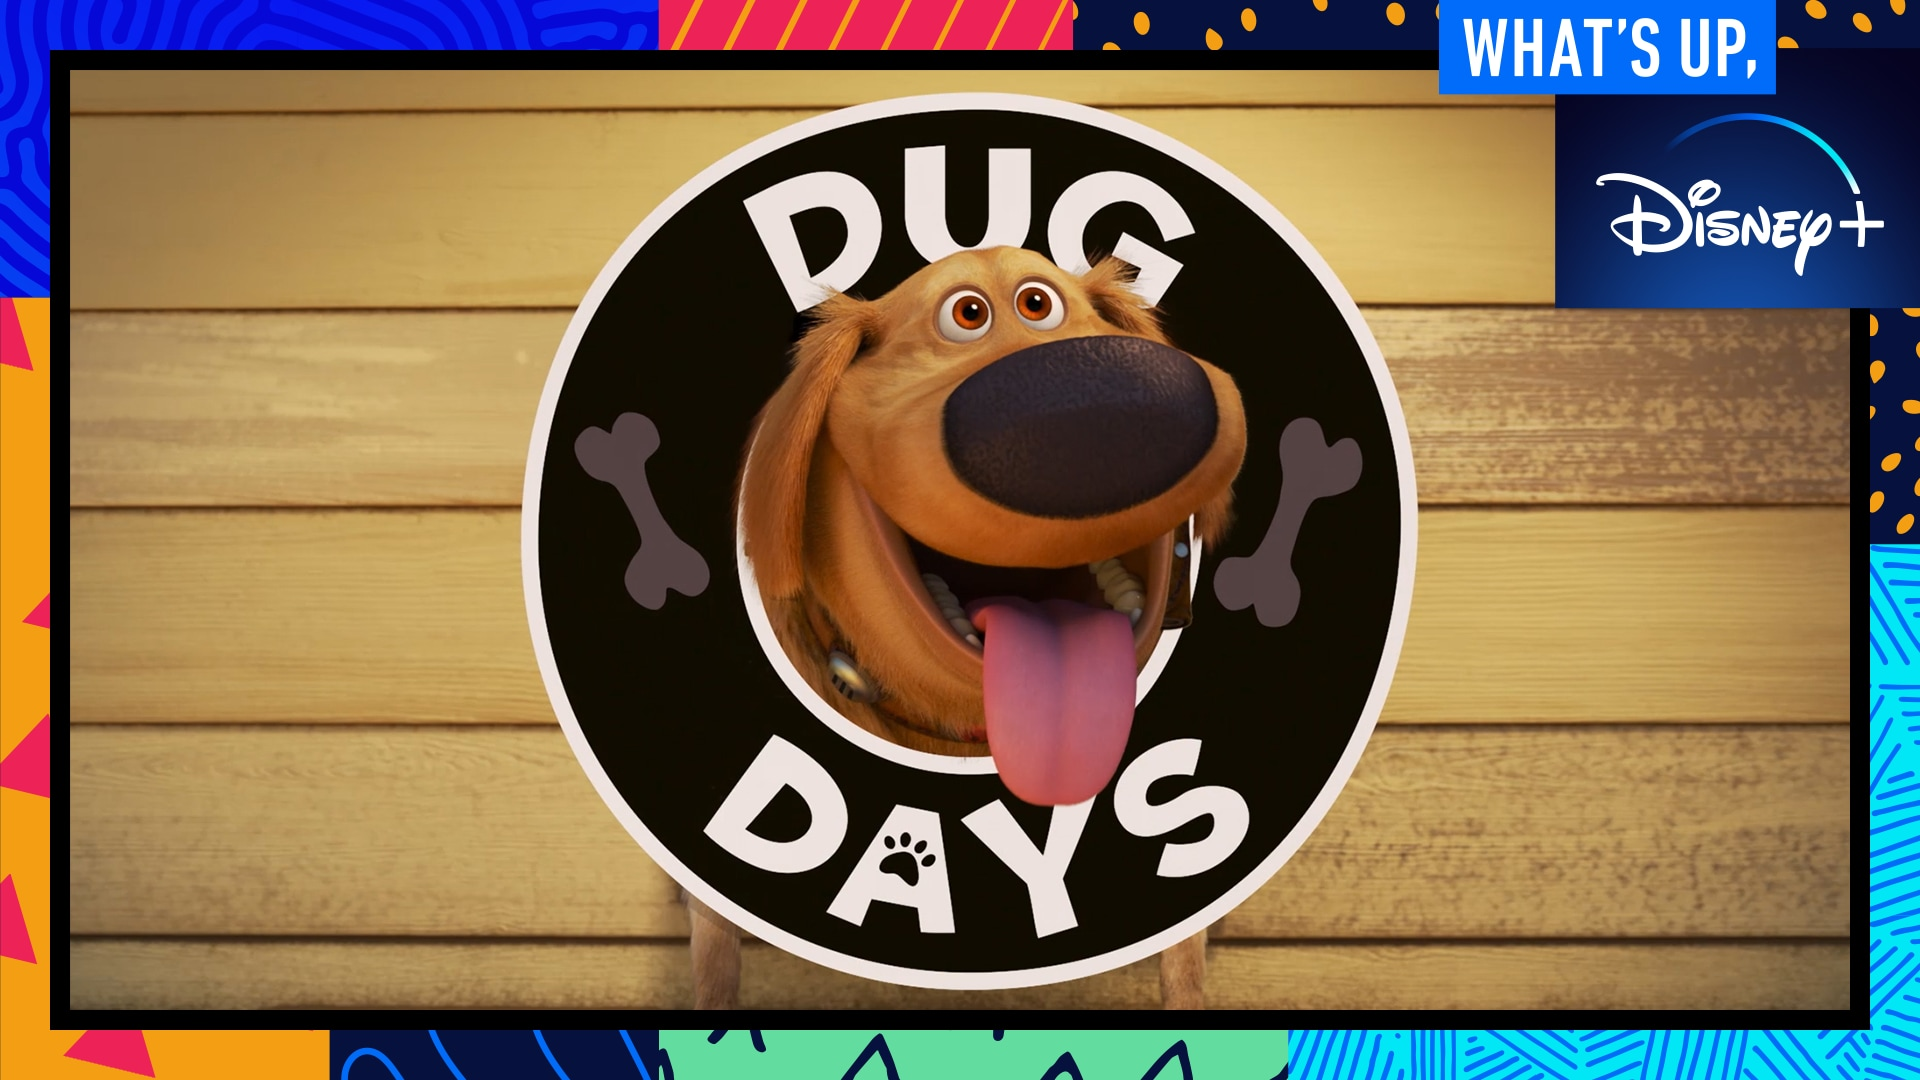 The Inspiration Behind Dug With Bob Peterson, Writer and Director of Dug Days | What's Up, Disney+